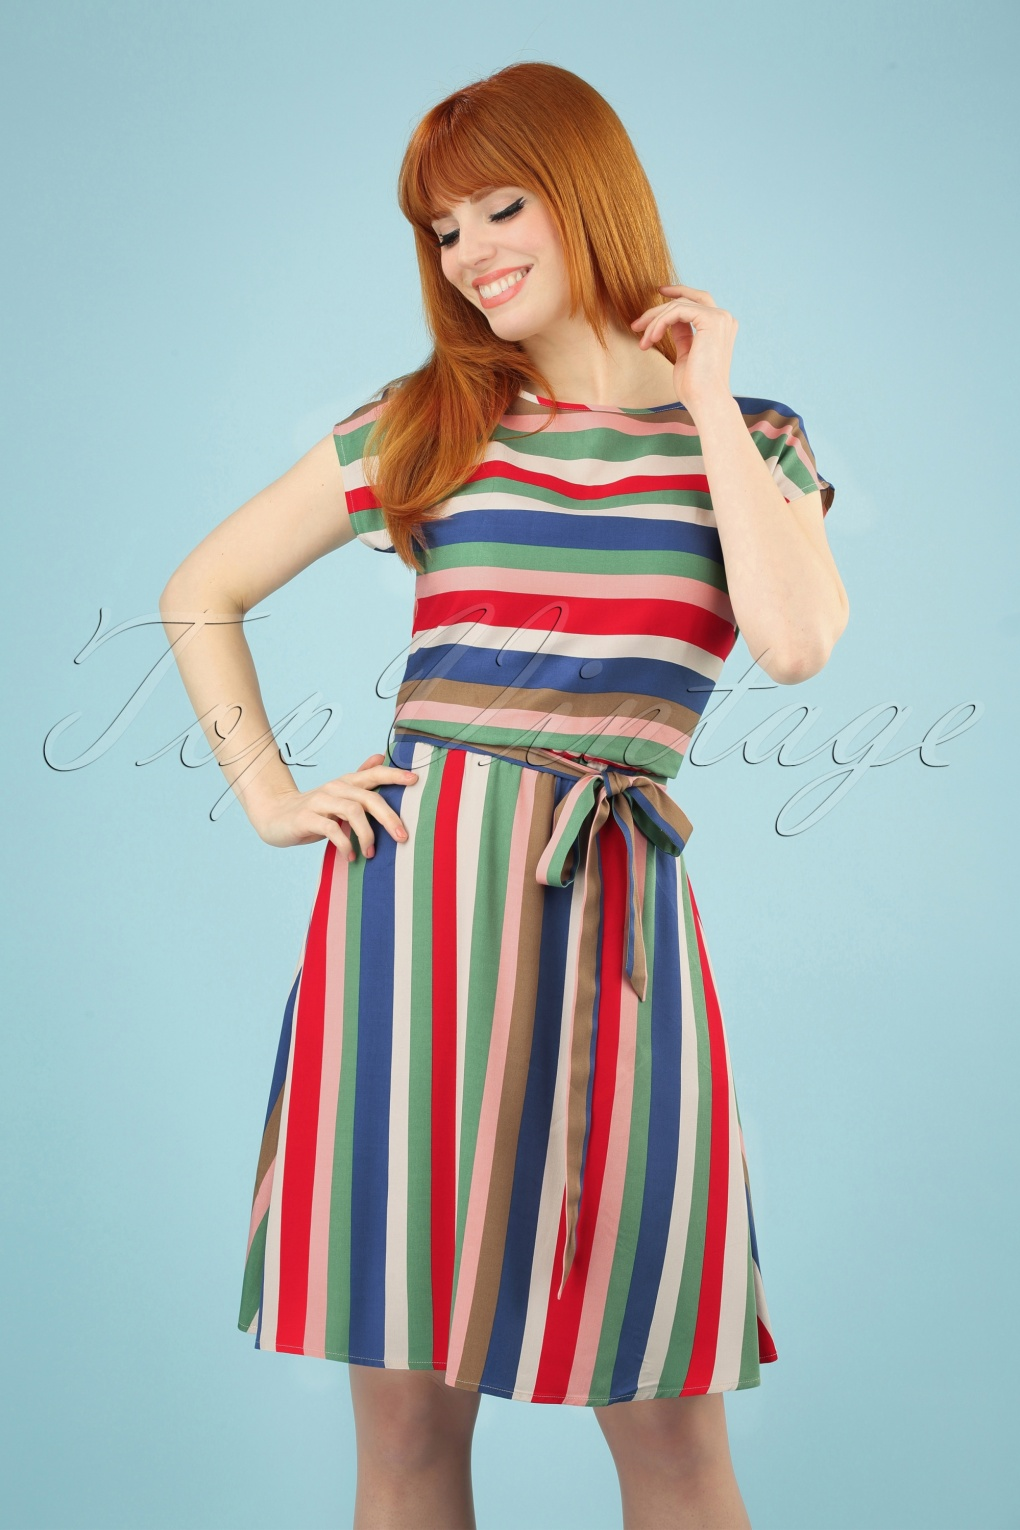 50 Vintage Inspired Clothing Stores 60s Connie Cabana Stripes Dress in Multi £57.89 AT vintagedancer.com